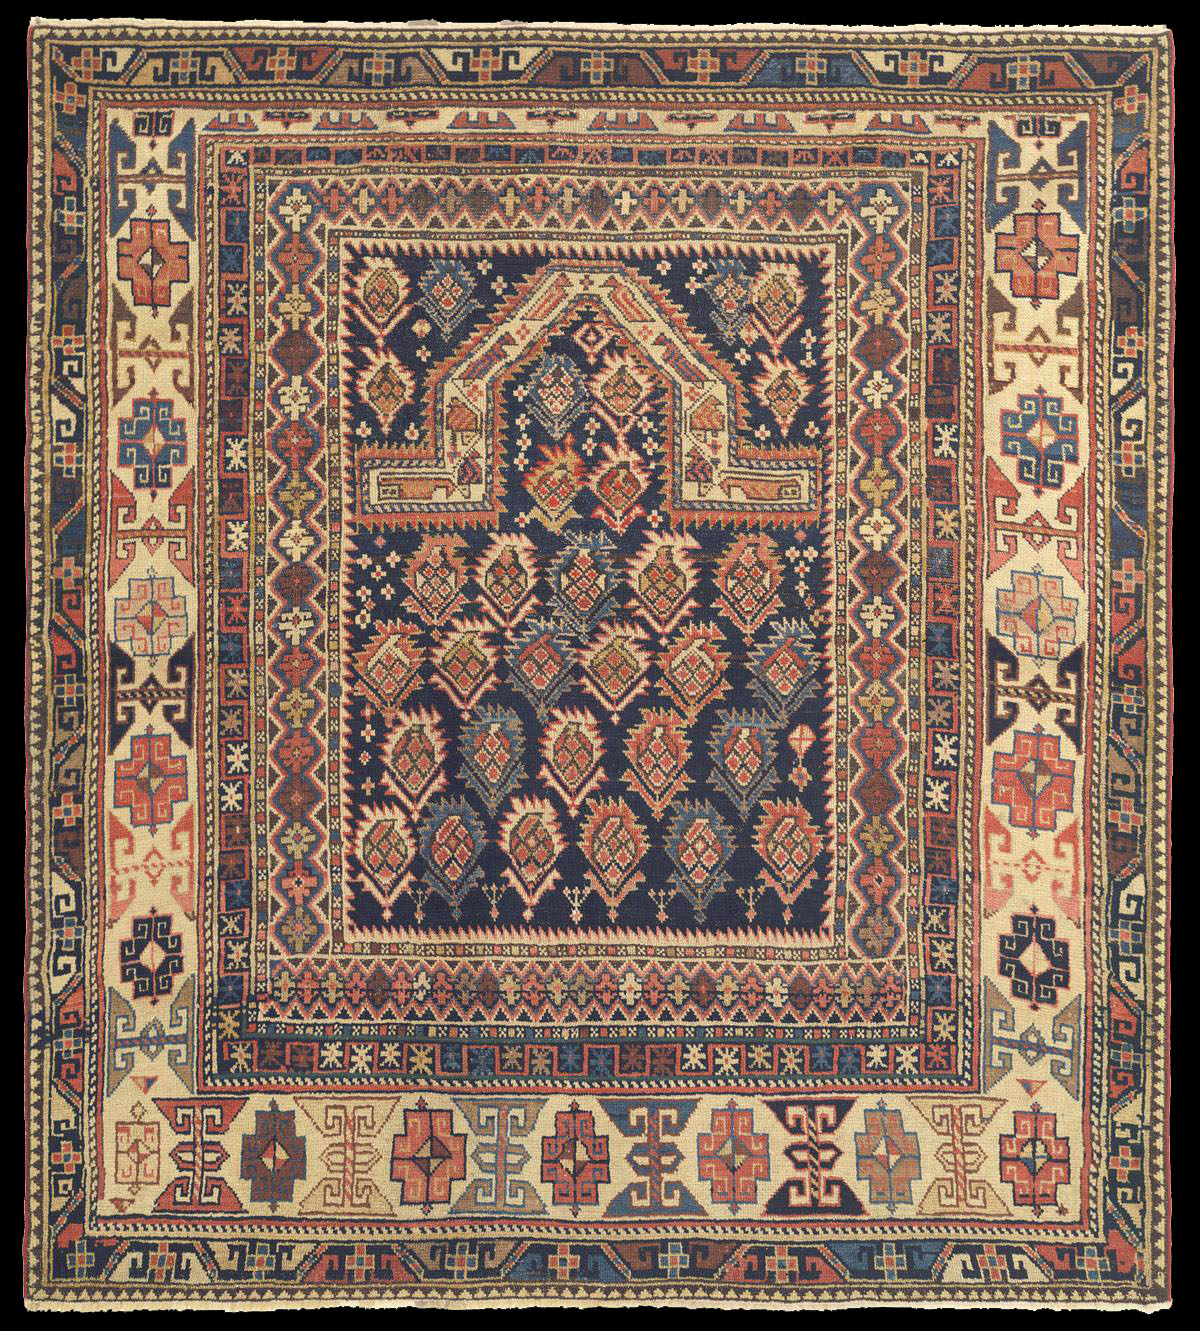 Prayer Rug Company: Derbend Daghestani Prayer Rug With The Radiating Boteh Motifs